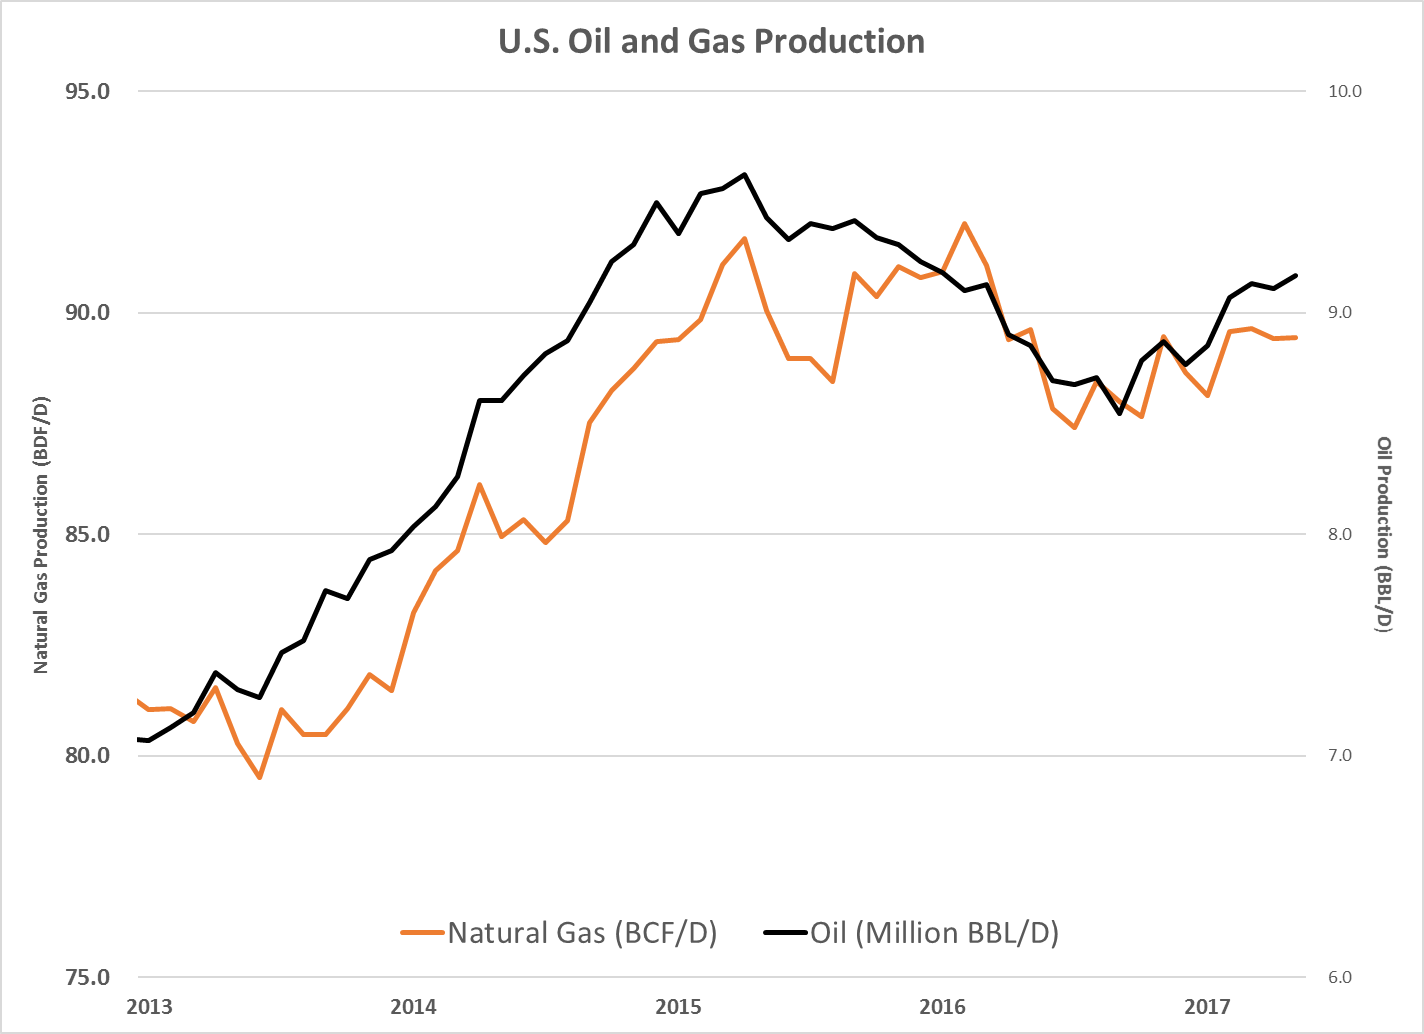 The collapse of oil prices has convinced many investors that U.S. oil is dead. However, that couldn't be further from the truth.